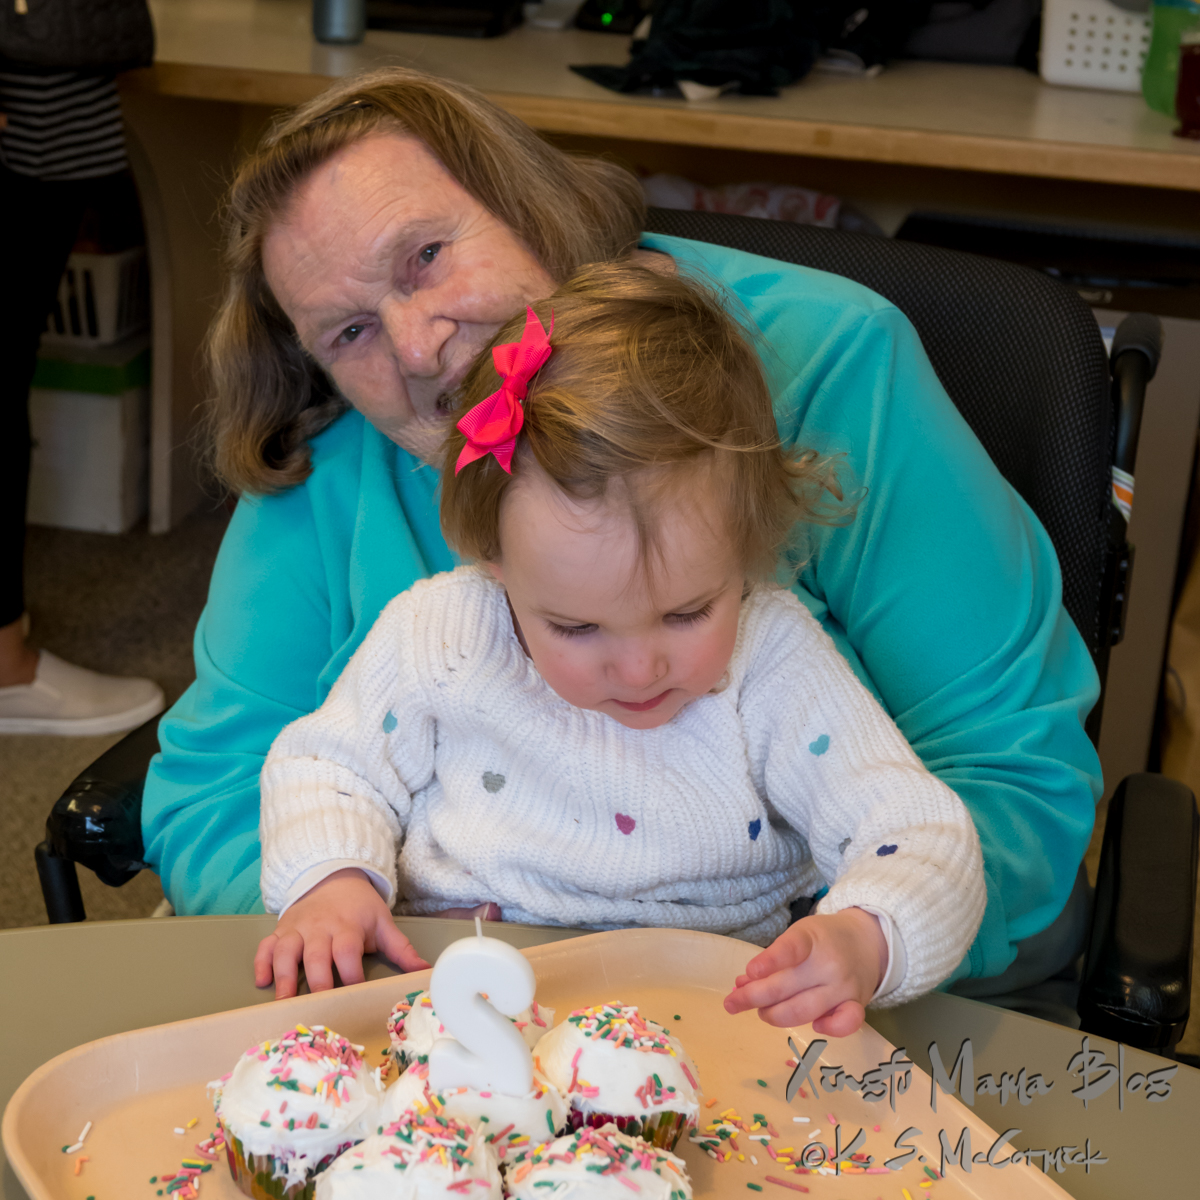 Woman in wheelchair holding a toddler who is playing with sprinkles from her birthday cupcakes.